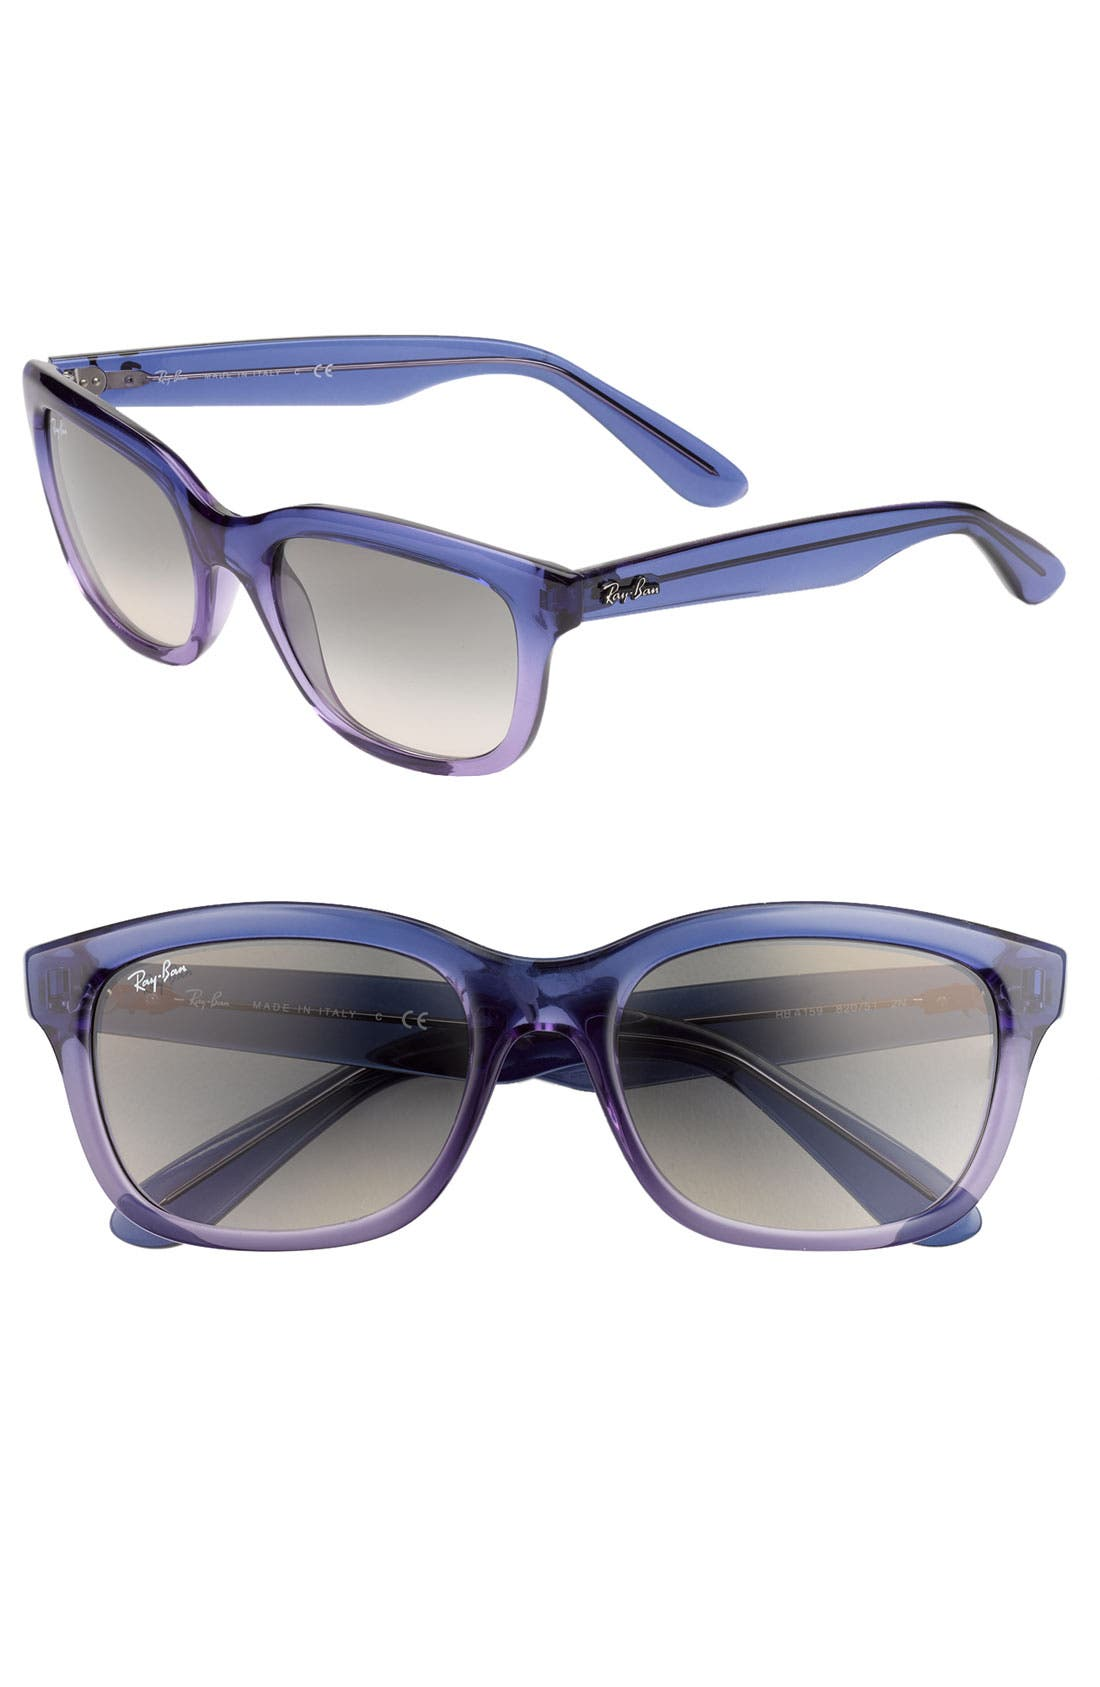 Main Image - Ray-Ban 'Updated Wayfarer' 54mm Sunglasses